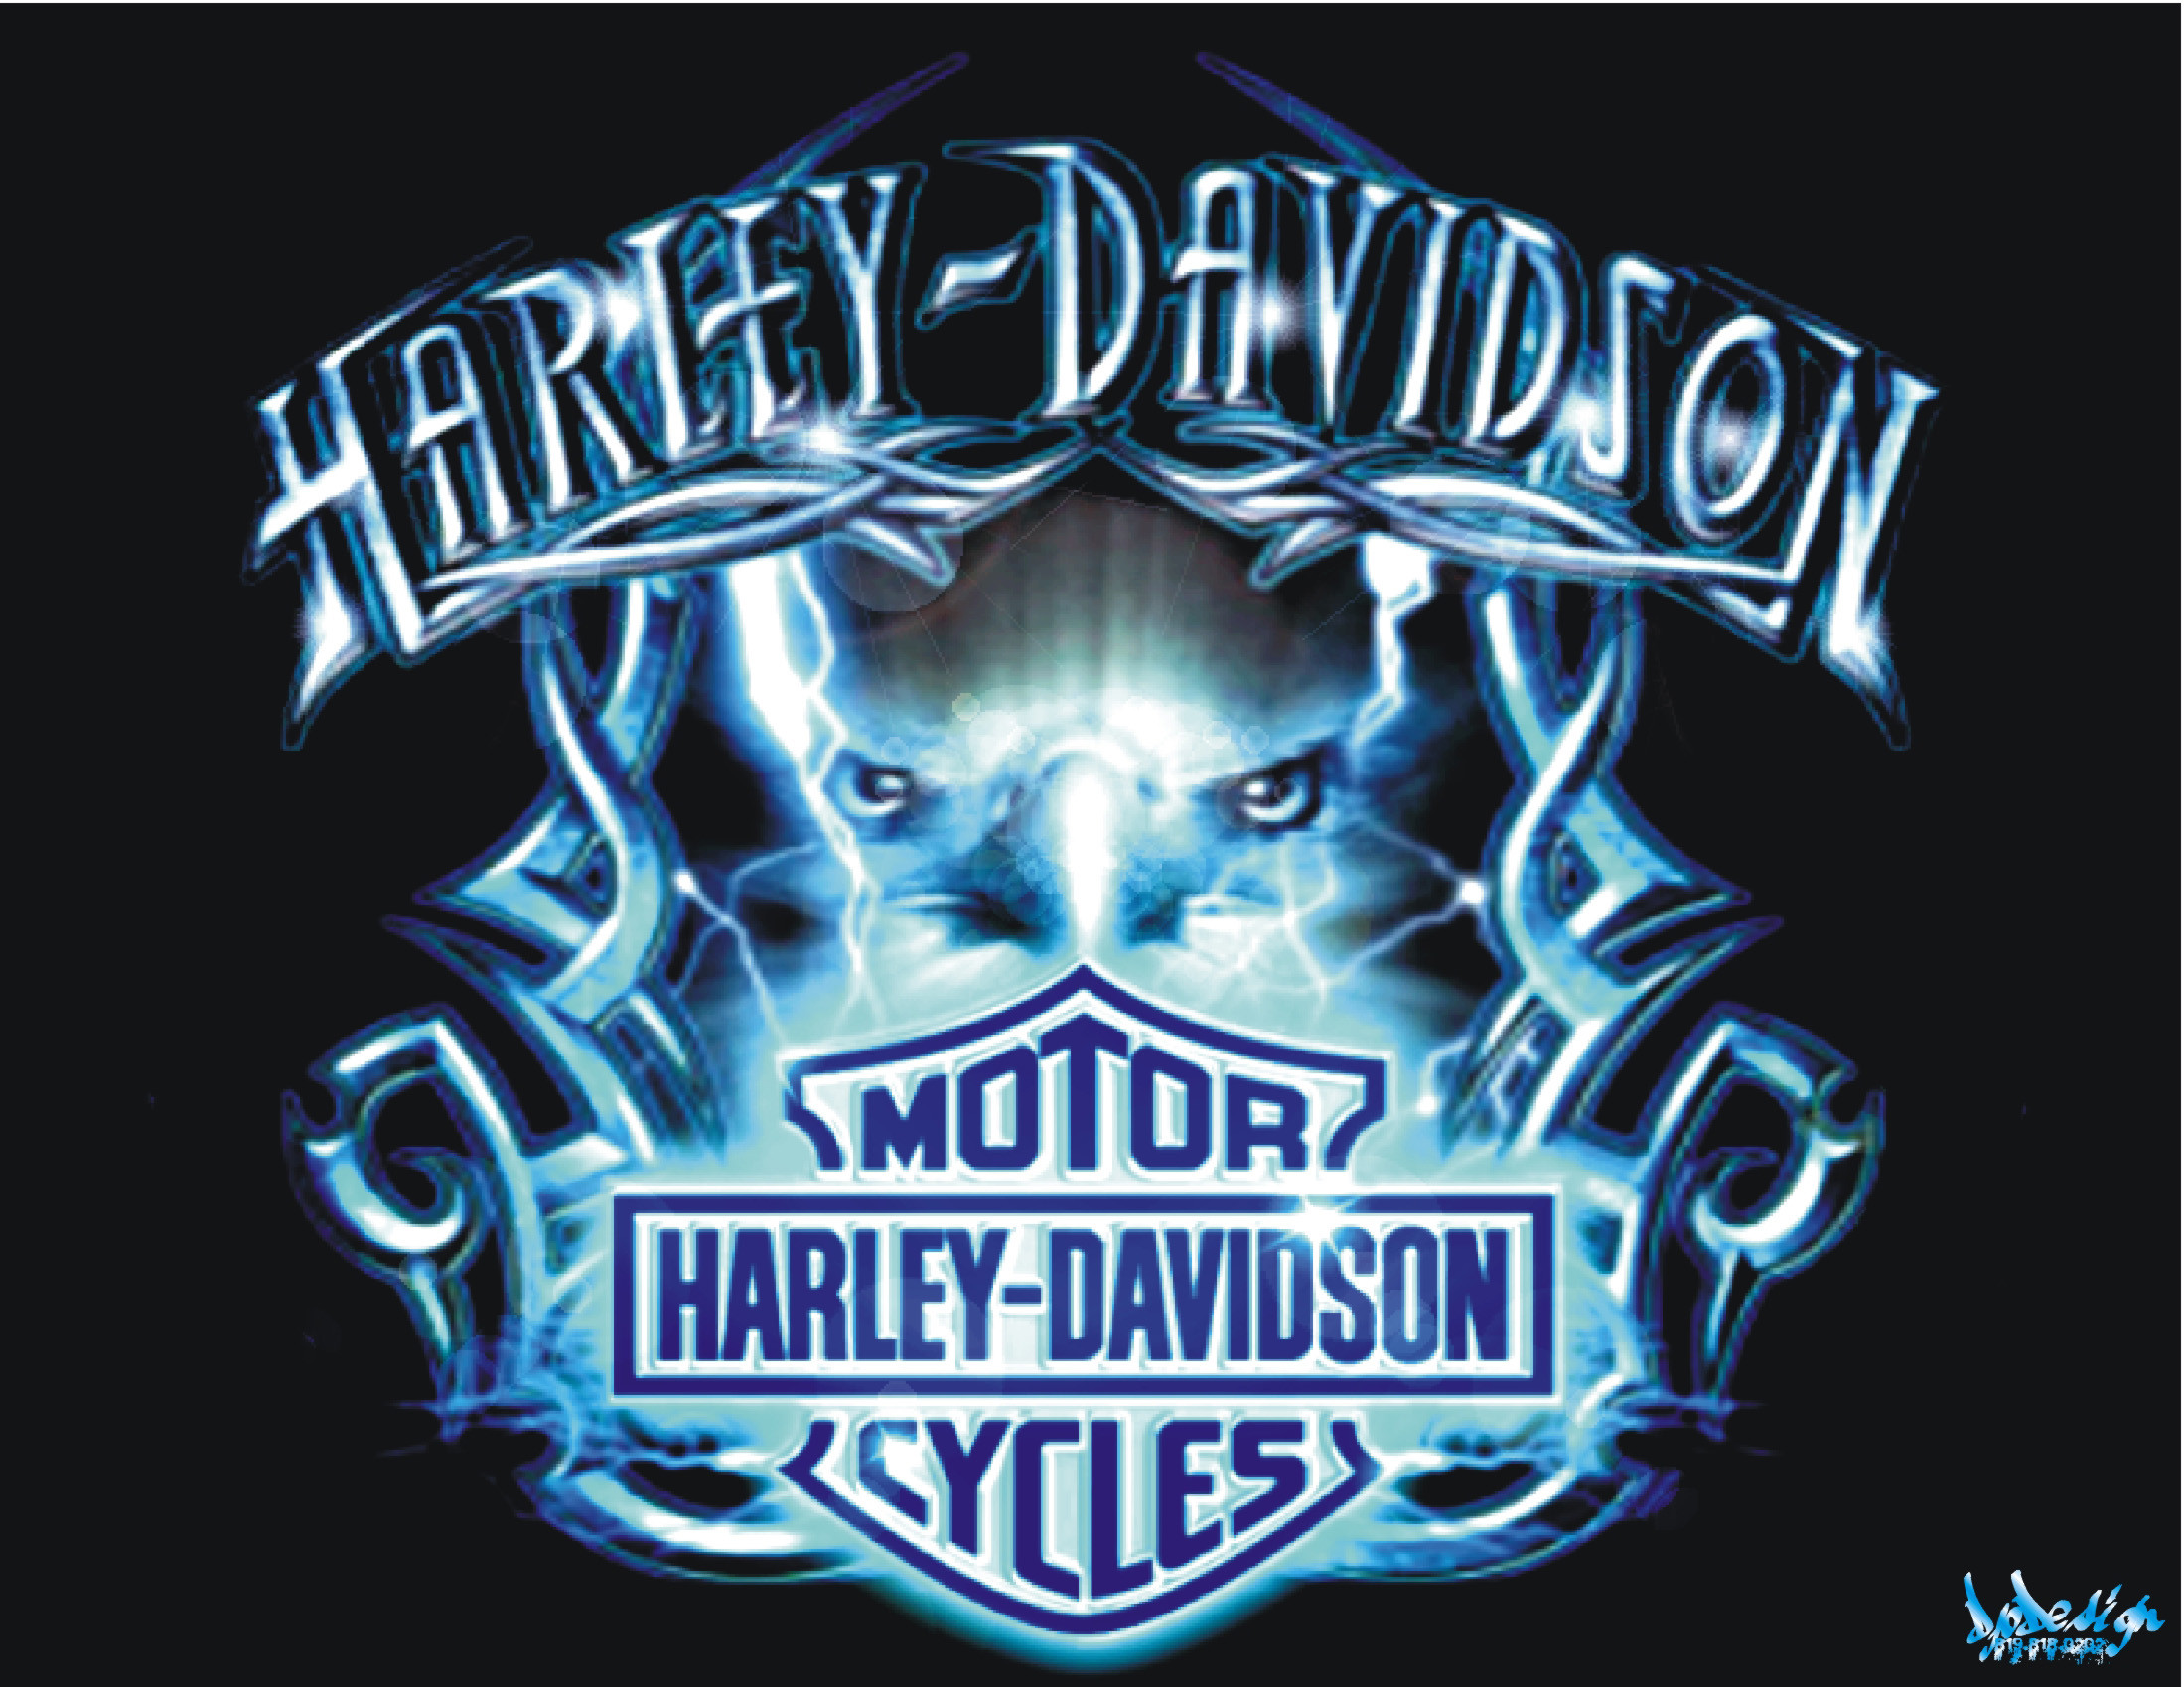 Harley Davidson Wallpapers Screensavers 80 Images 2560x1600 Free Hd Pc